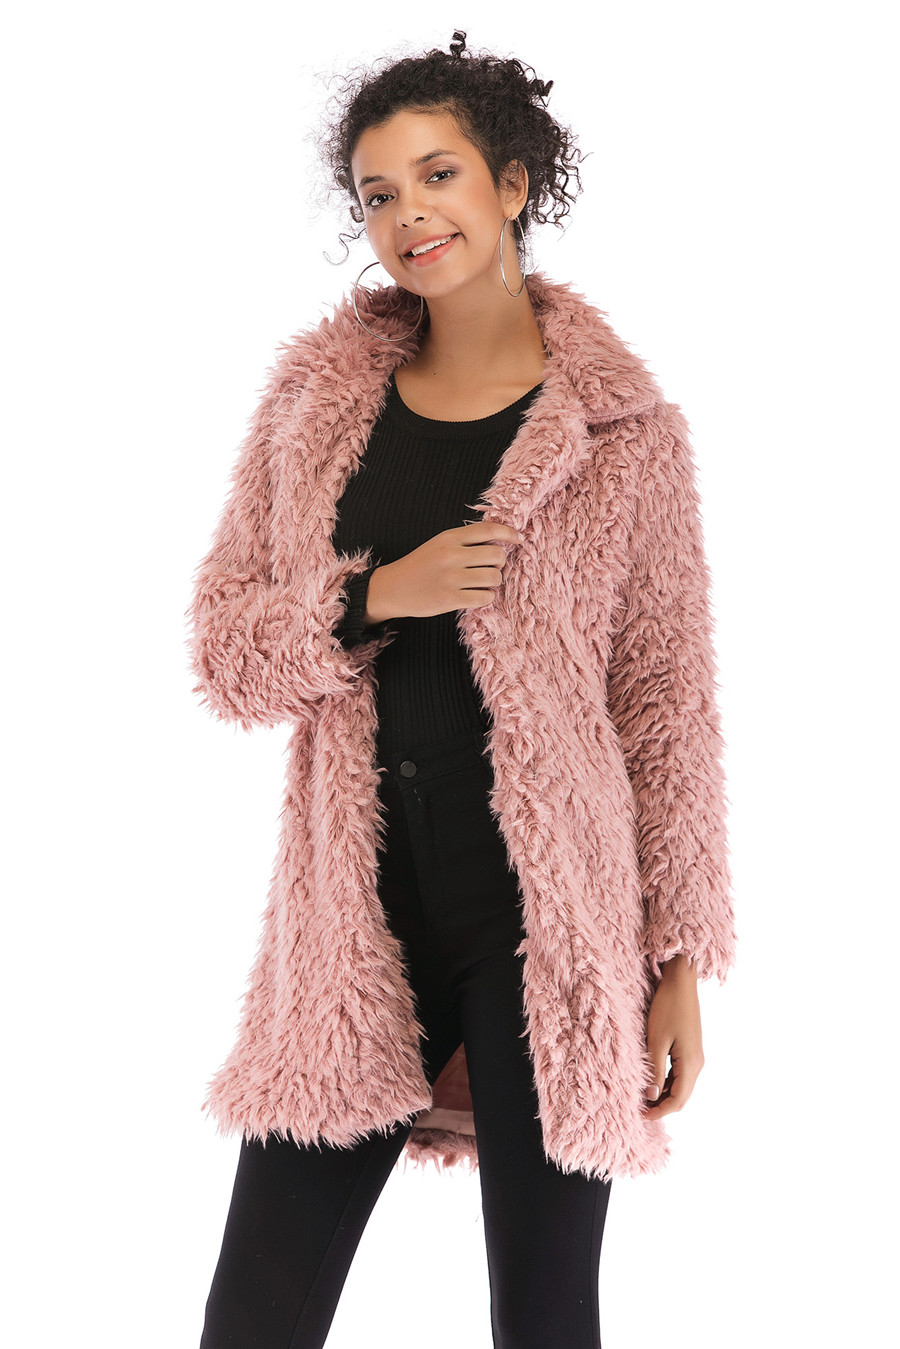 Gladiolus 2018 Women Autumn Winter Coat Turn-Down Collar Long Sleeve Covered Button Long Warm Shaggy Faux Fur Coat Women Jackets (32)